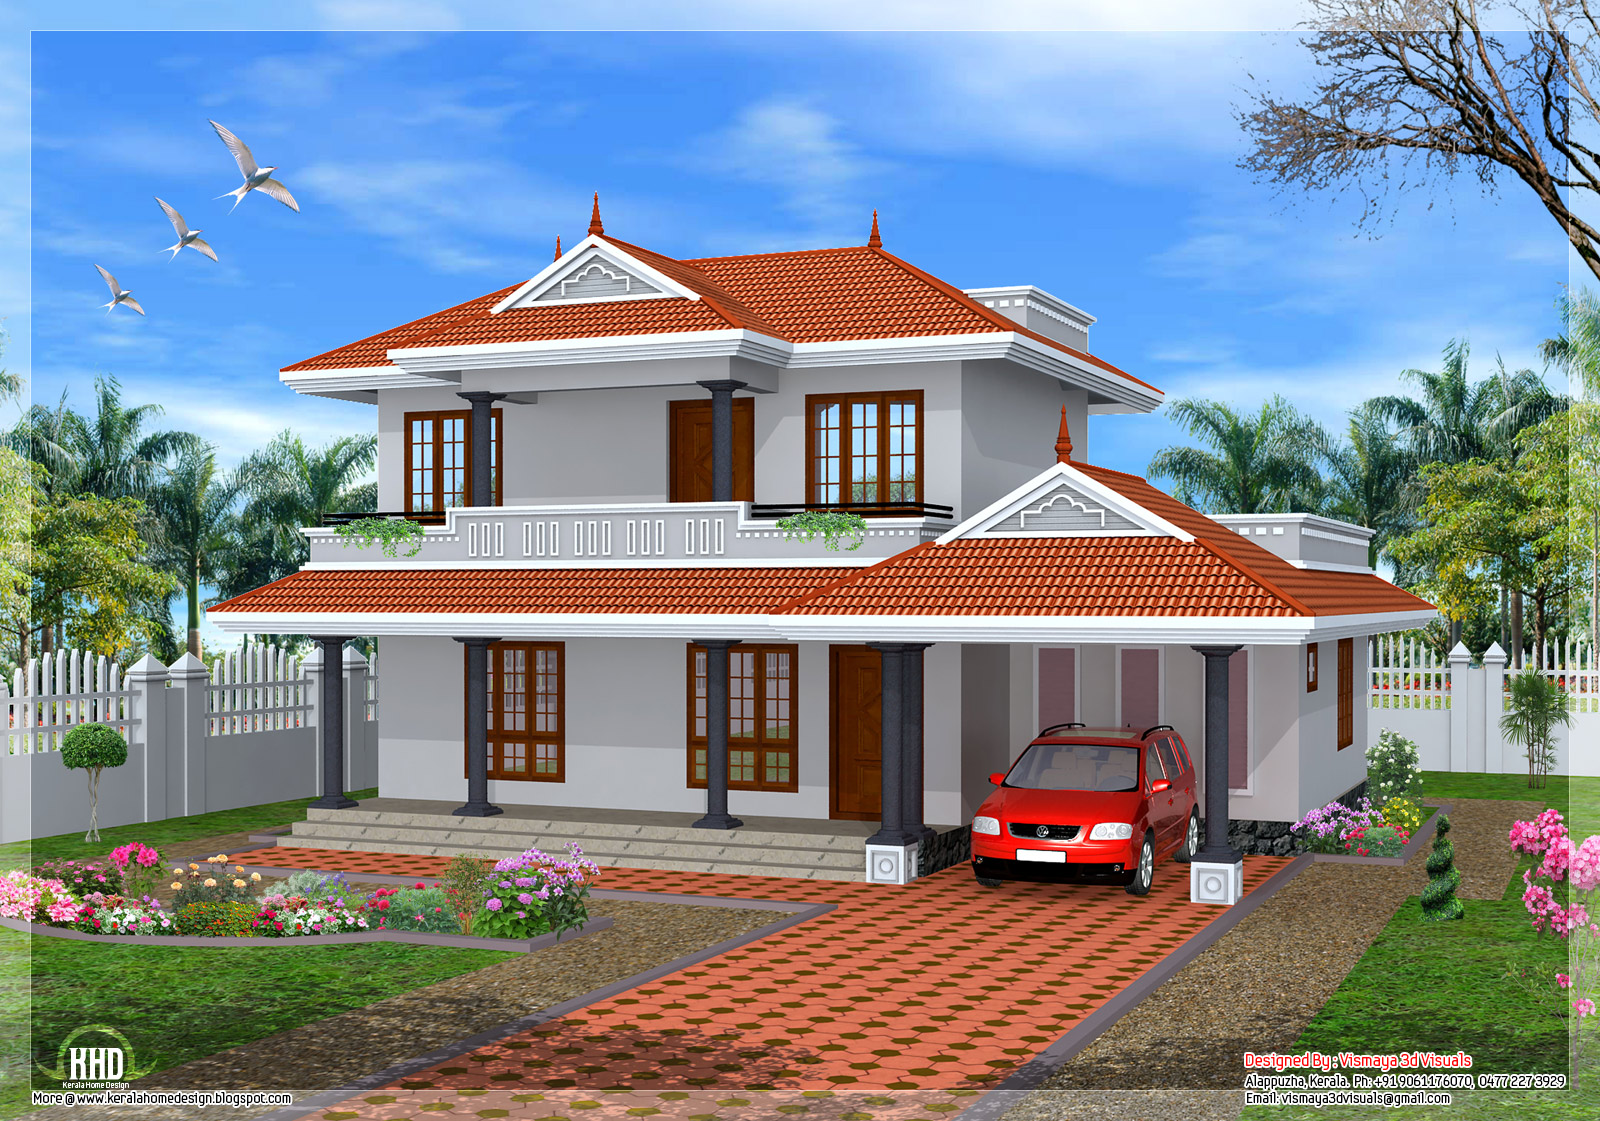 2001 3 bedroom sloping roof home design kerala for House plans architect